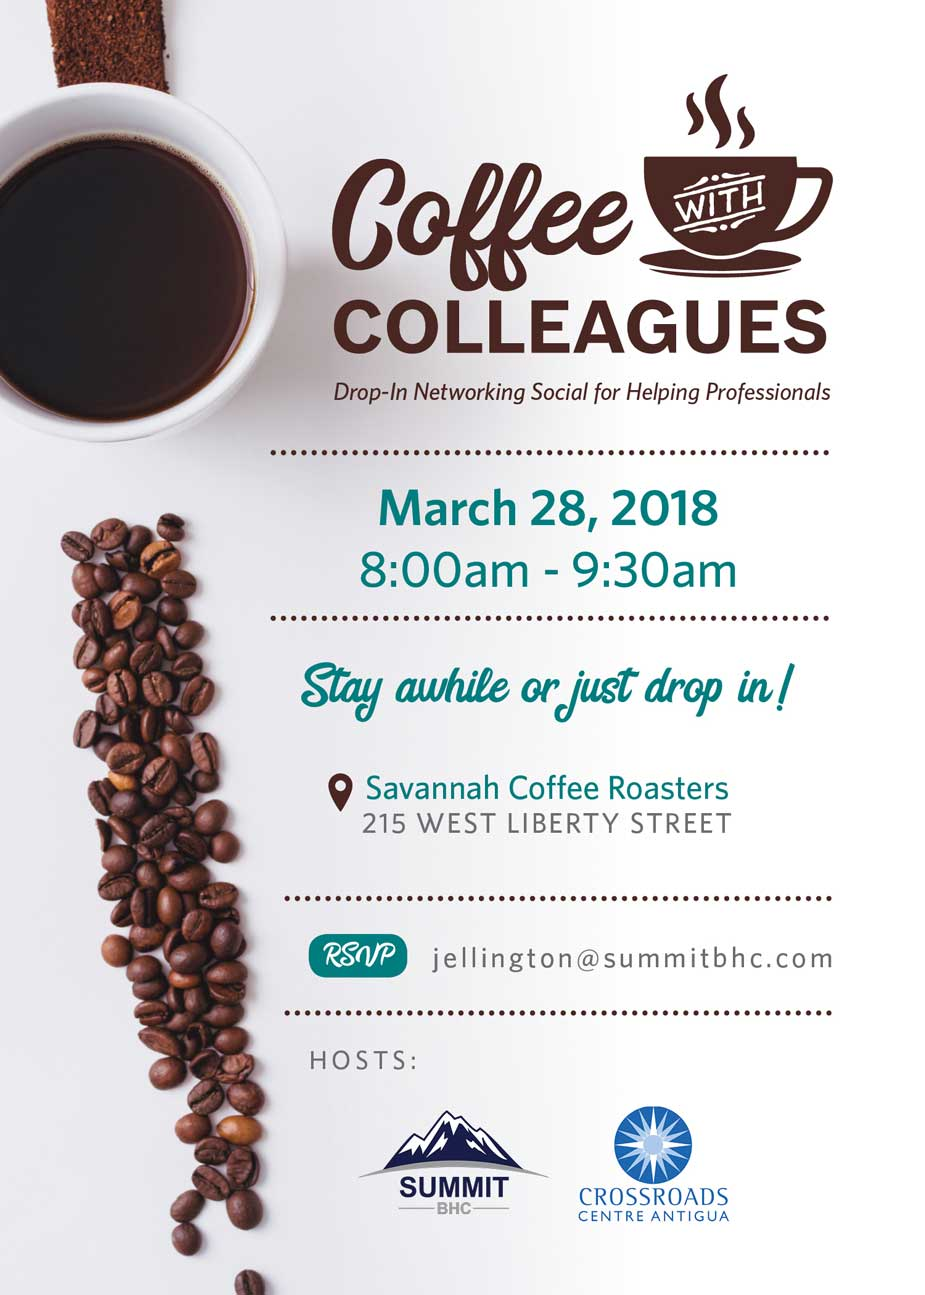 Coffee with Colleagues - March 28, 2018 - Summit BHC hosted events